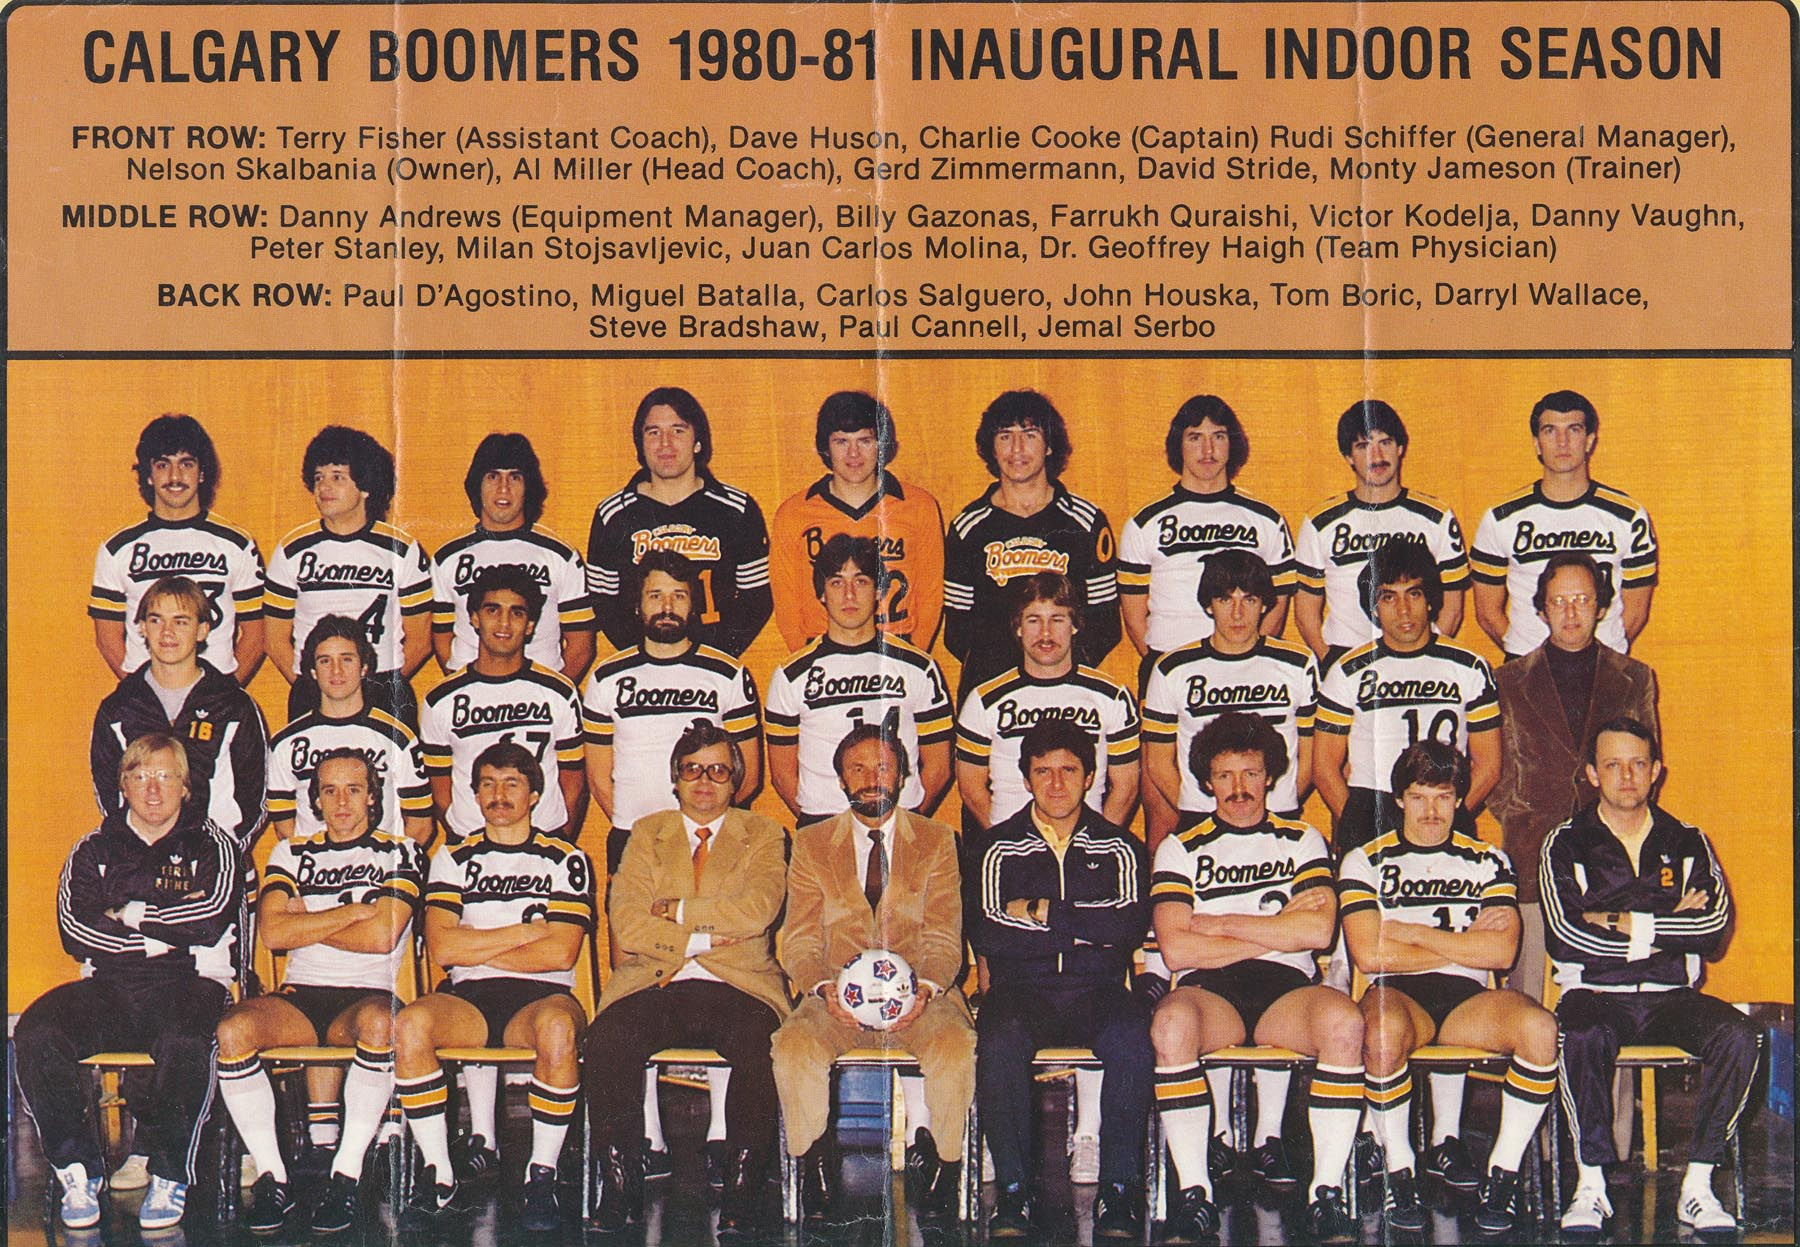 Boomers 80-81 Indoor Home Team.jpg